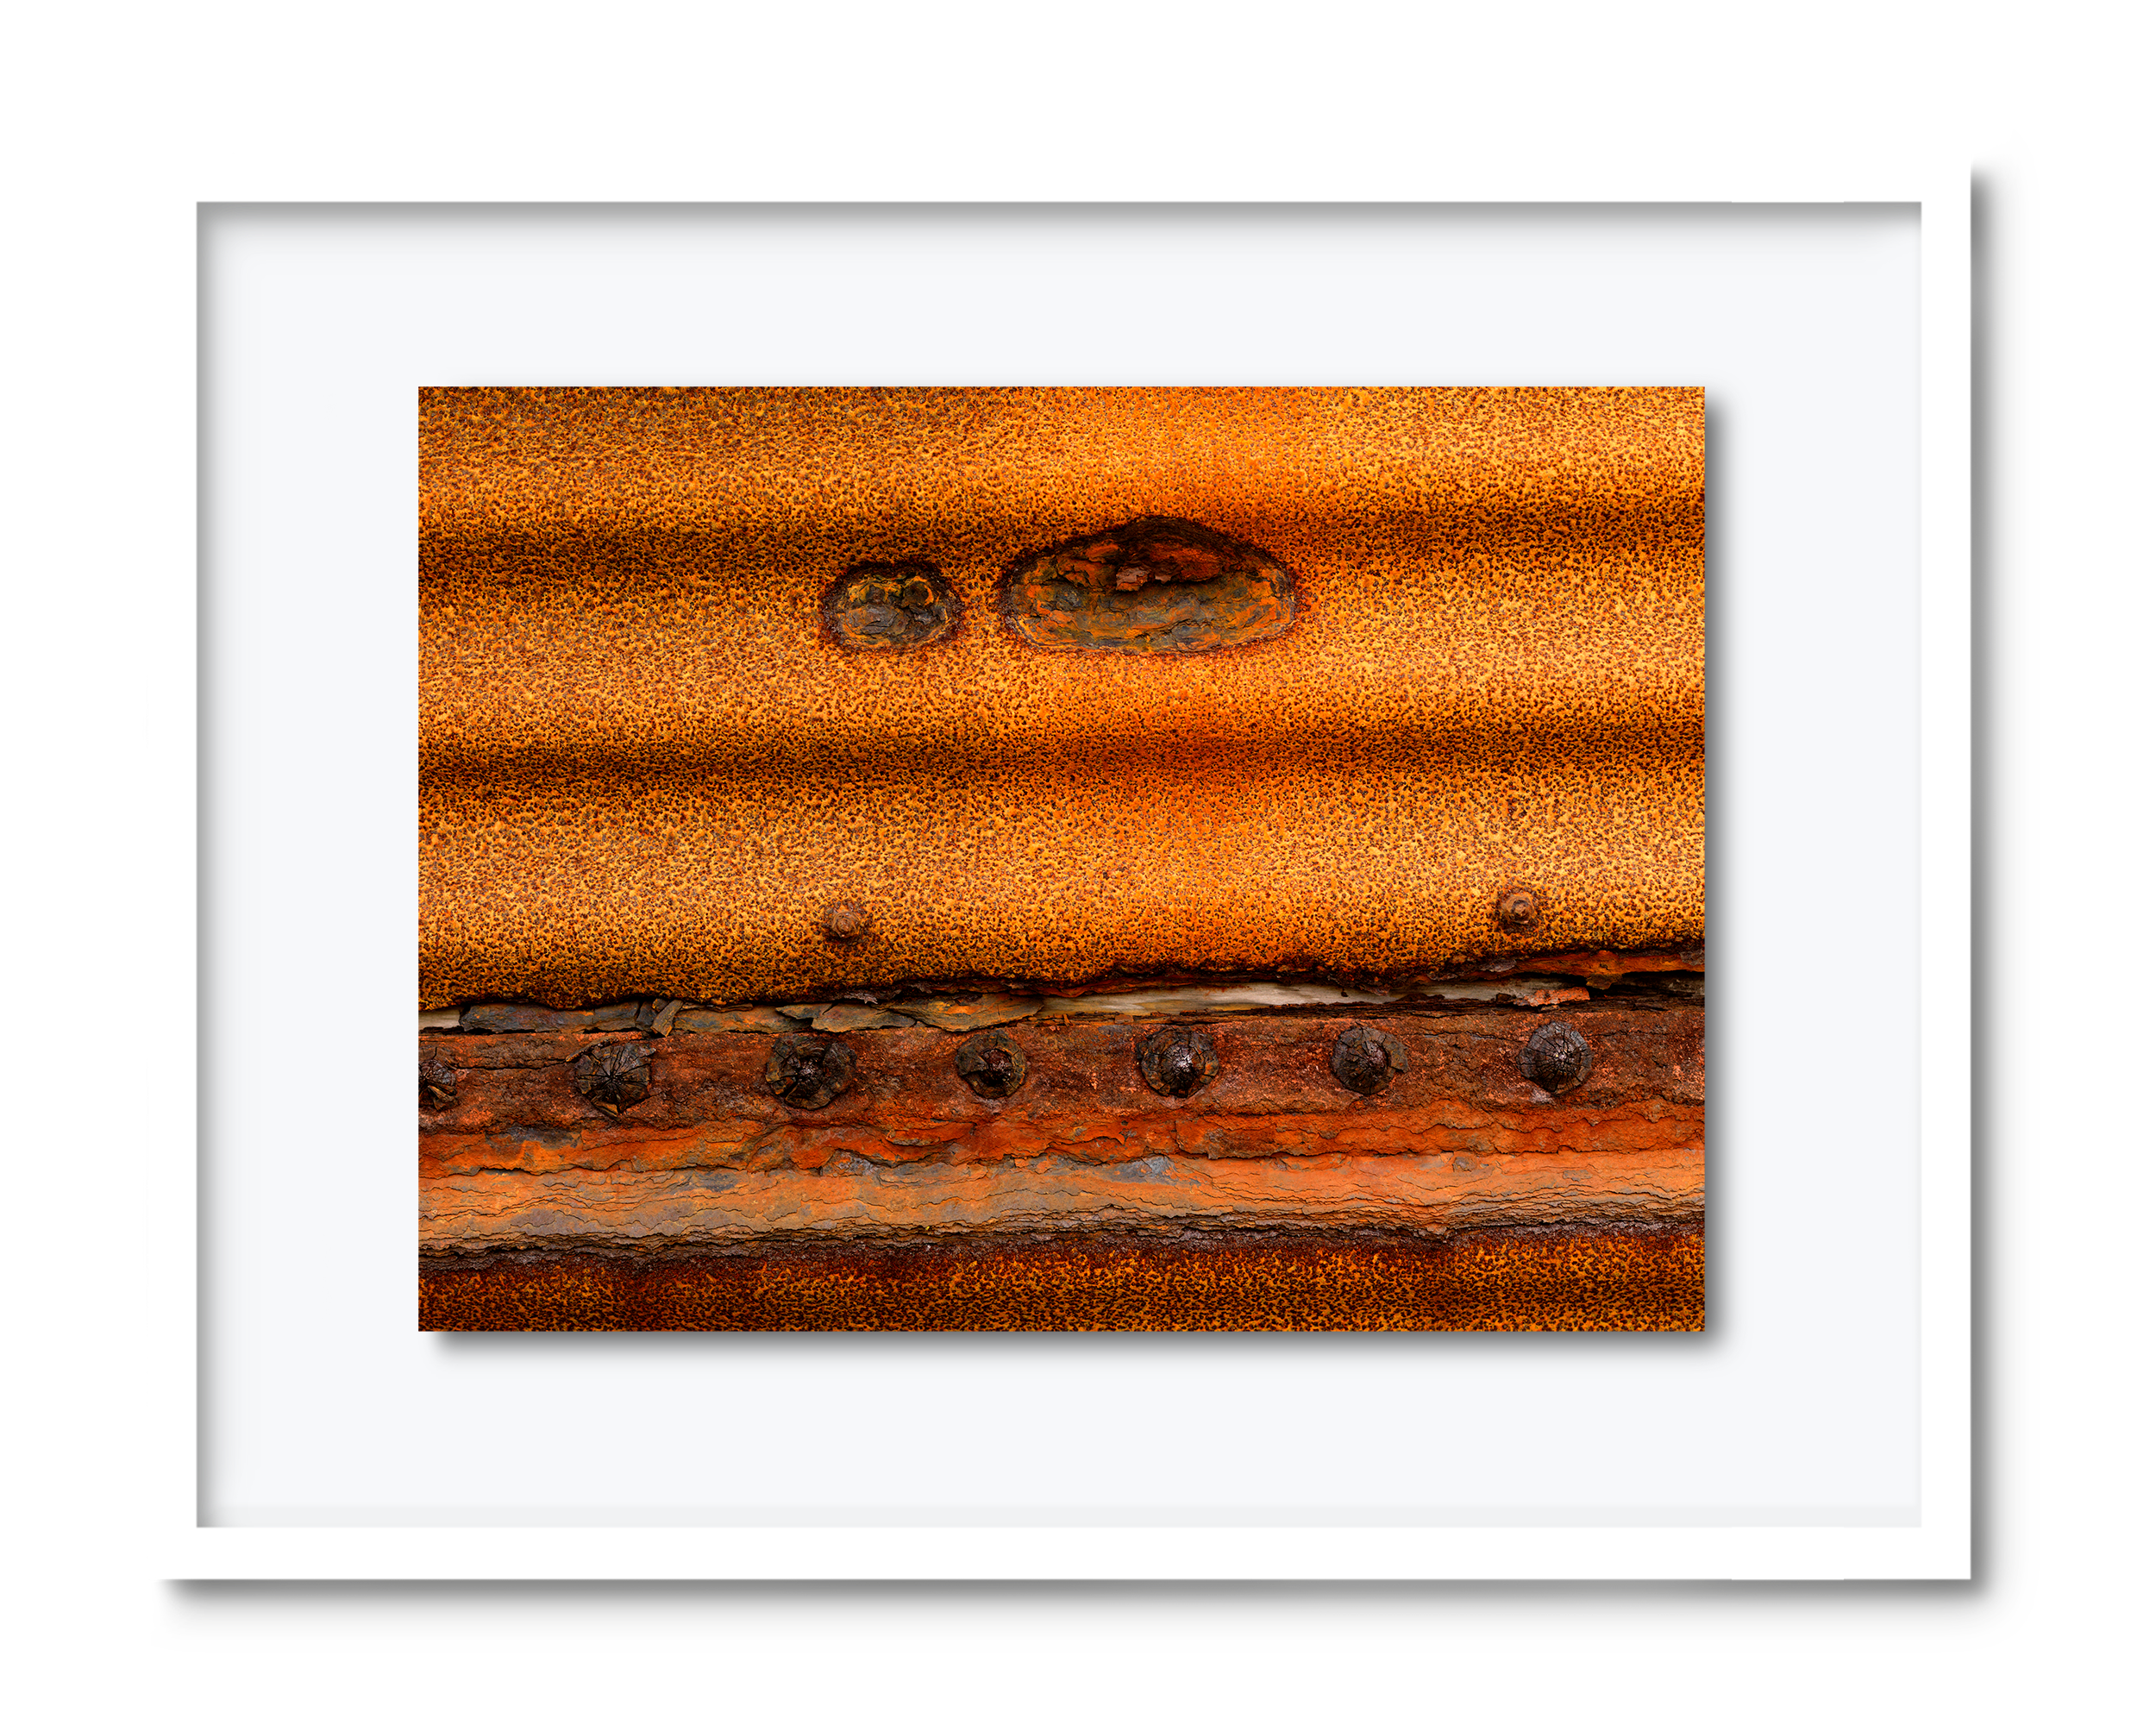 44.david-pearce-rust-texture.png